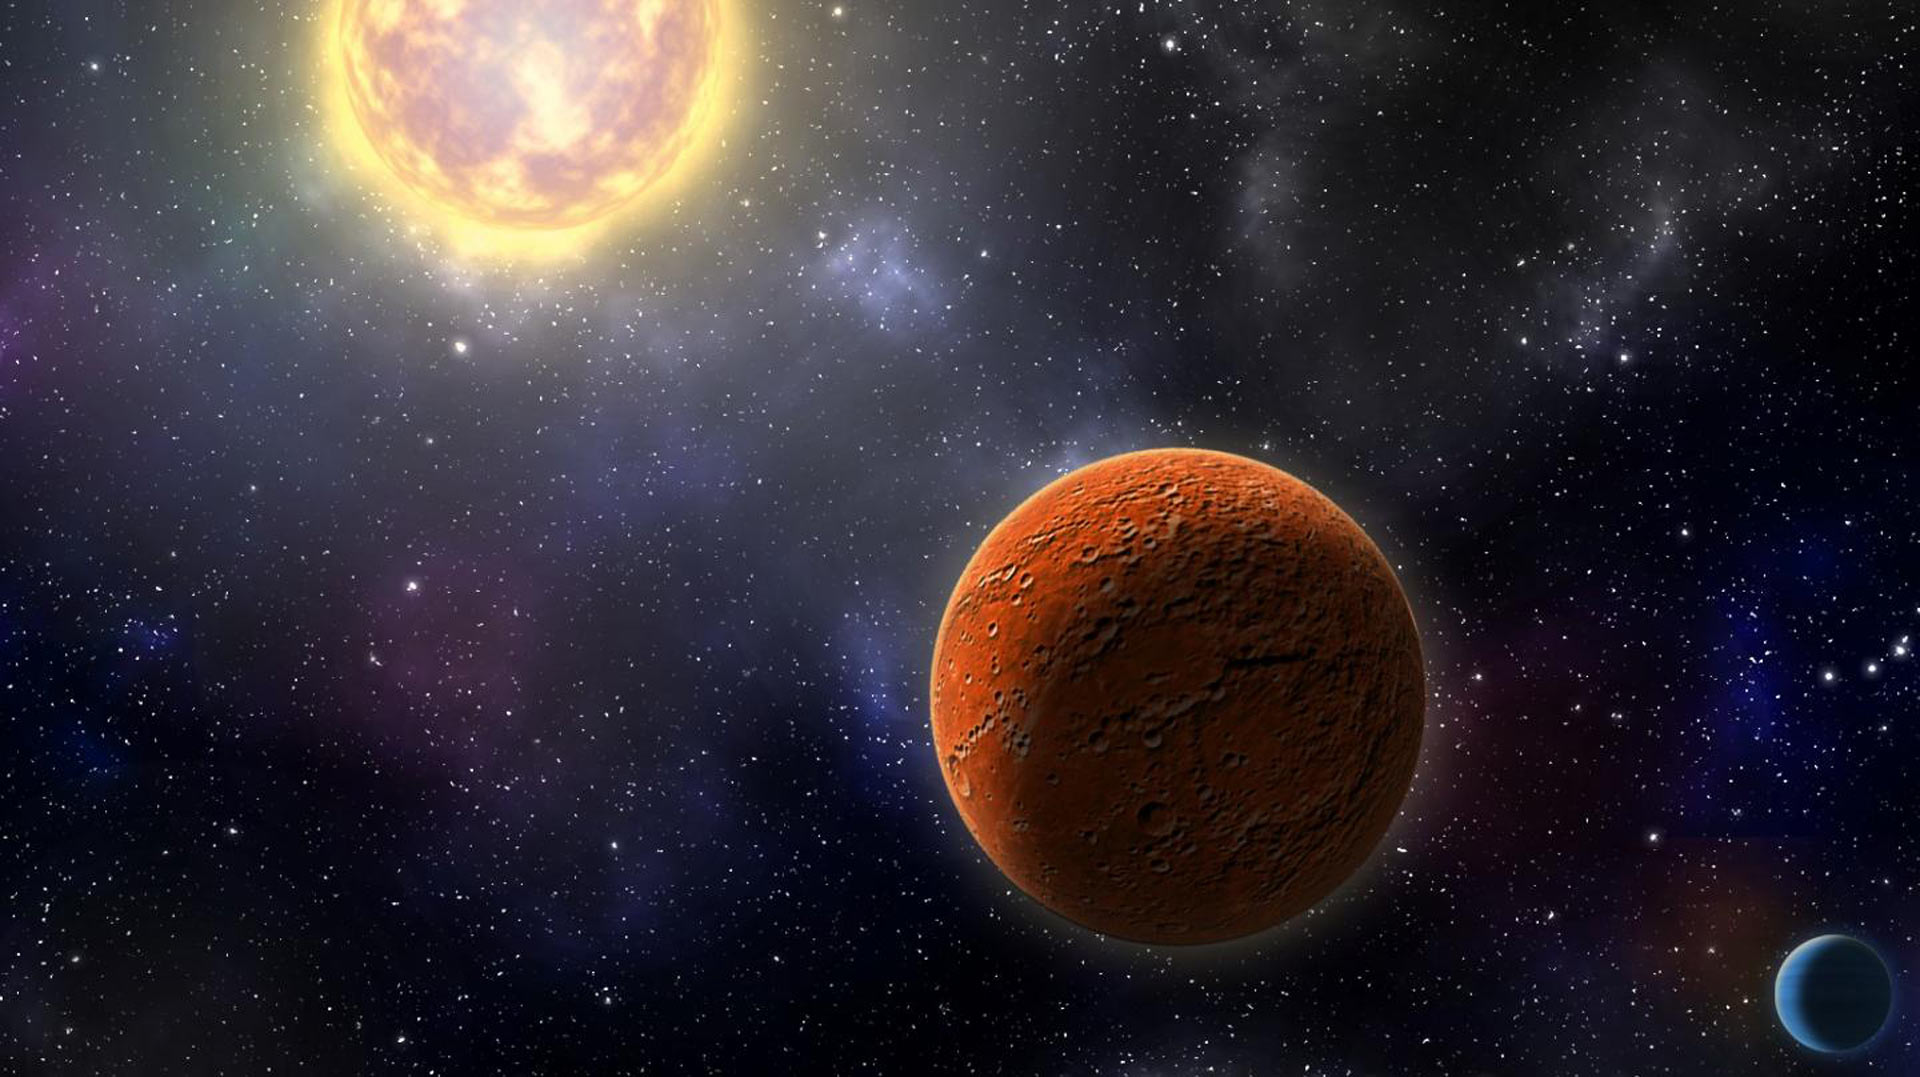 Hd C Tess Discovers Its First Earth Sized Exoplanet